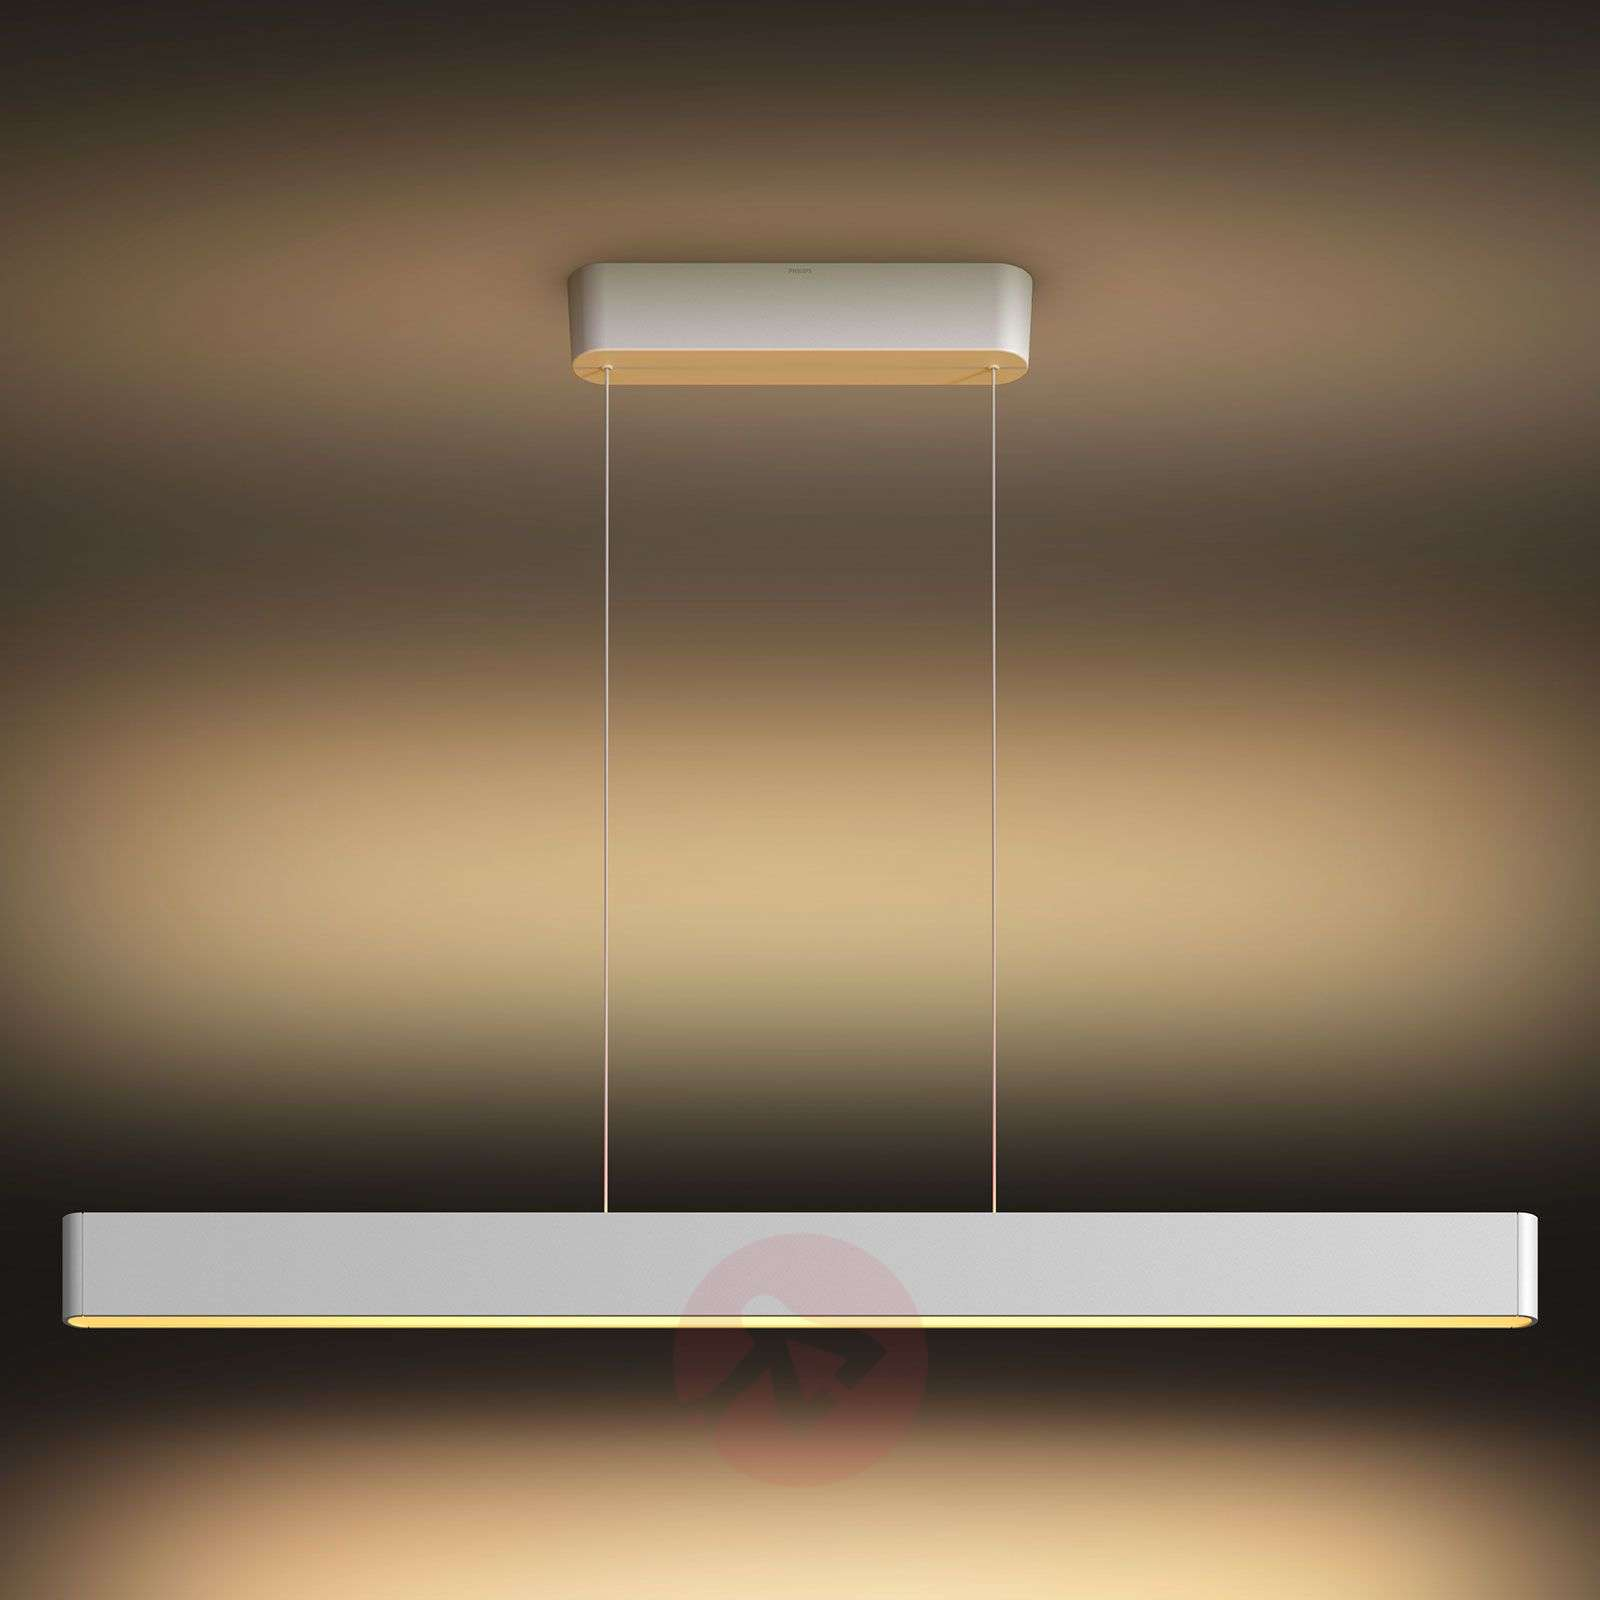 Philips Hue Ensis LED hanglamp, RGBW-7534156-01